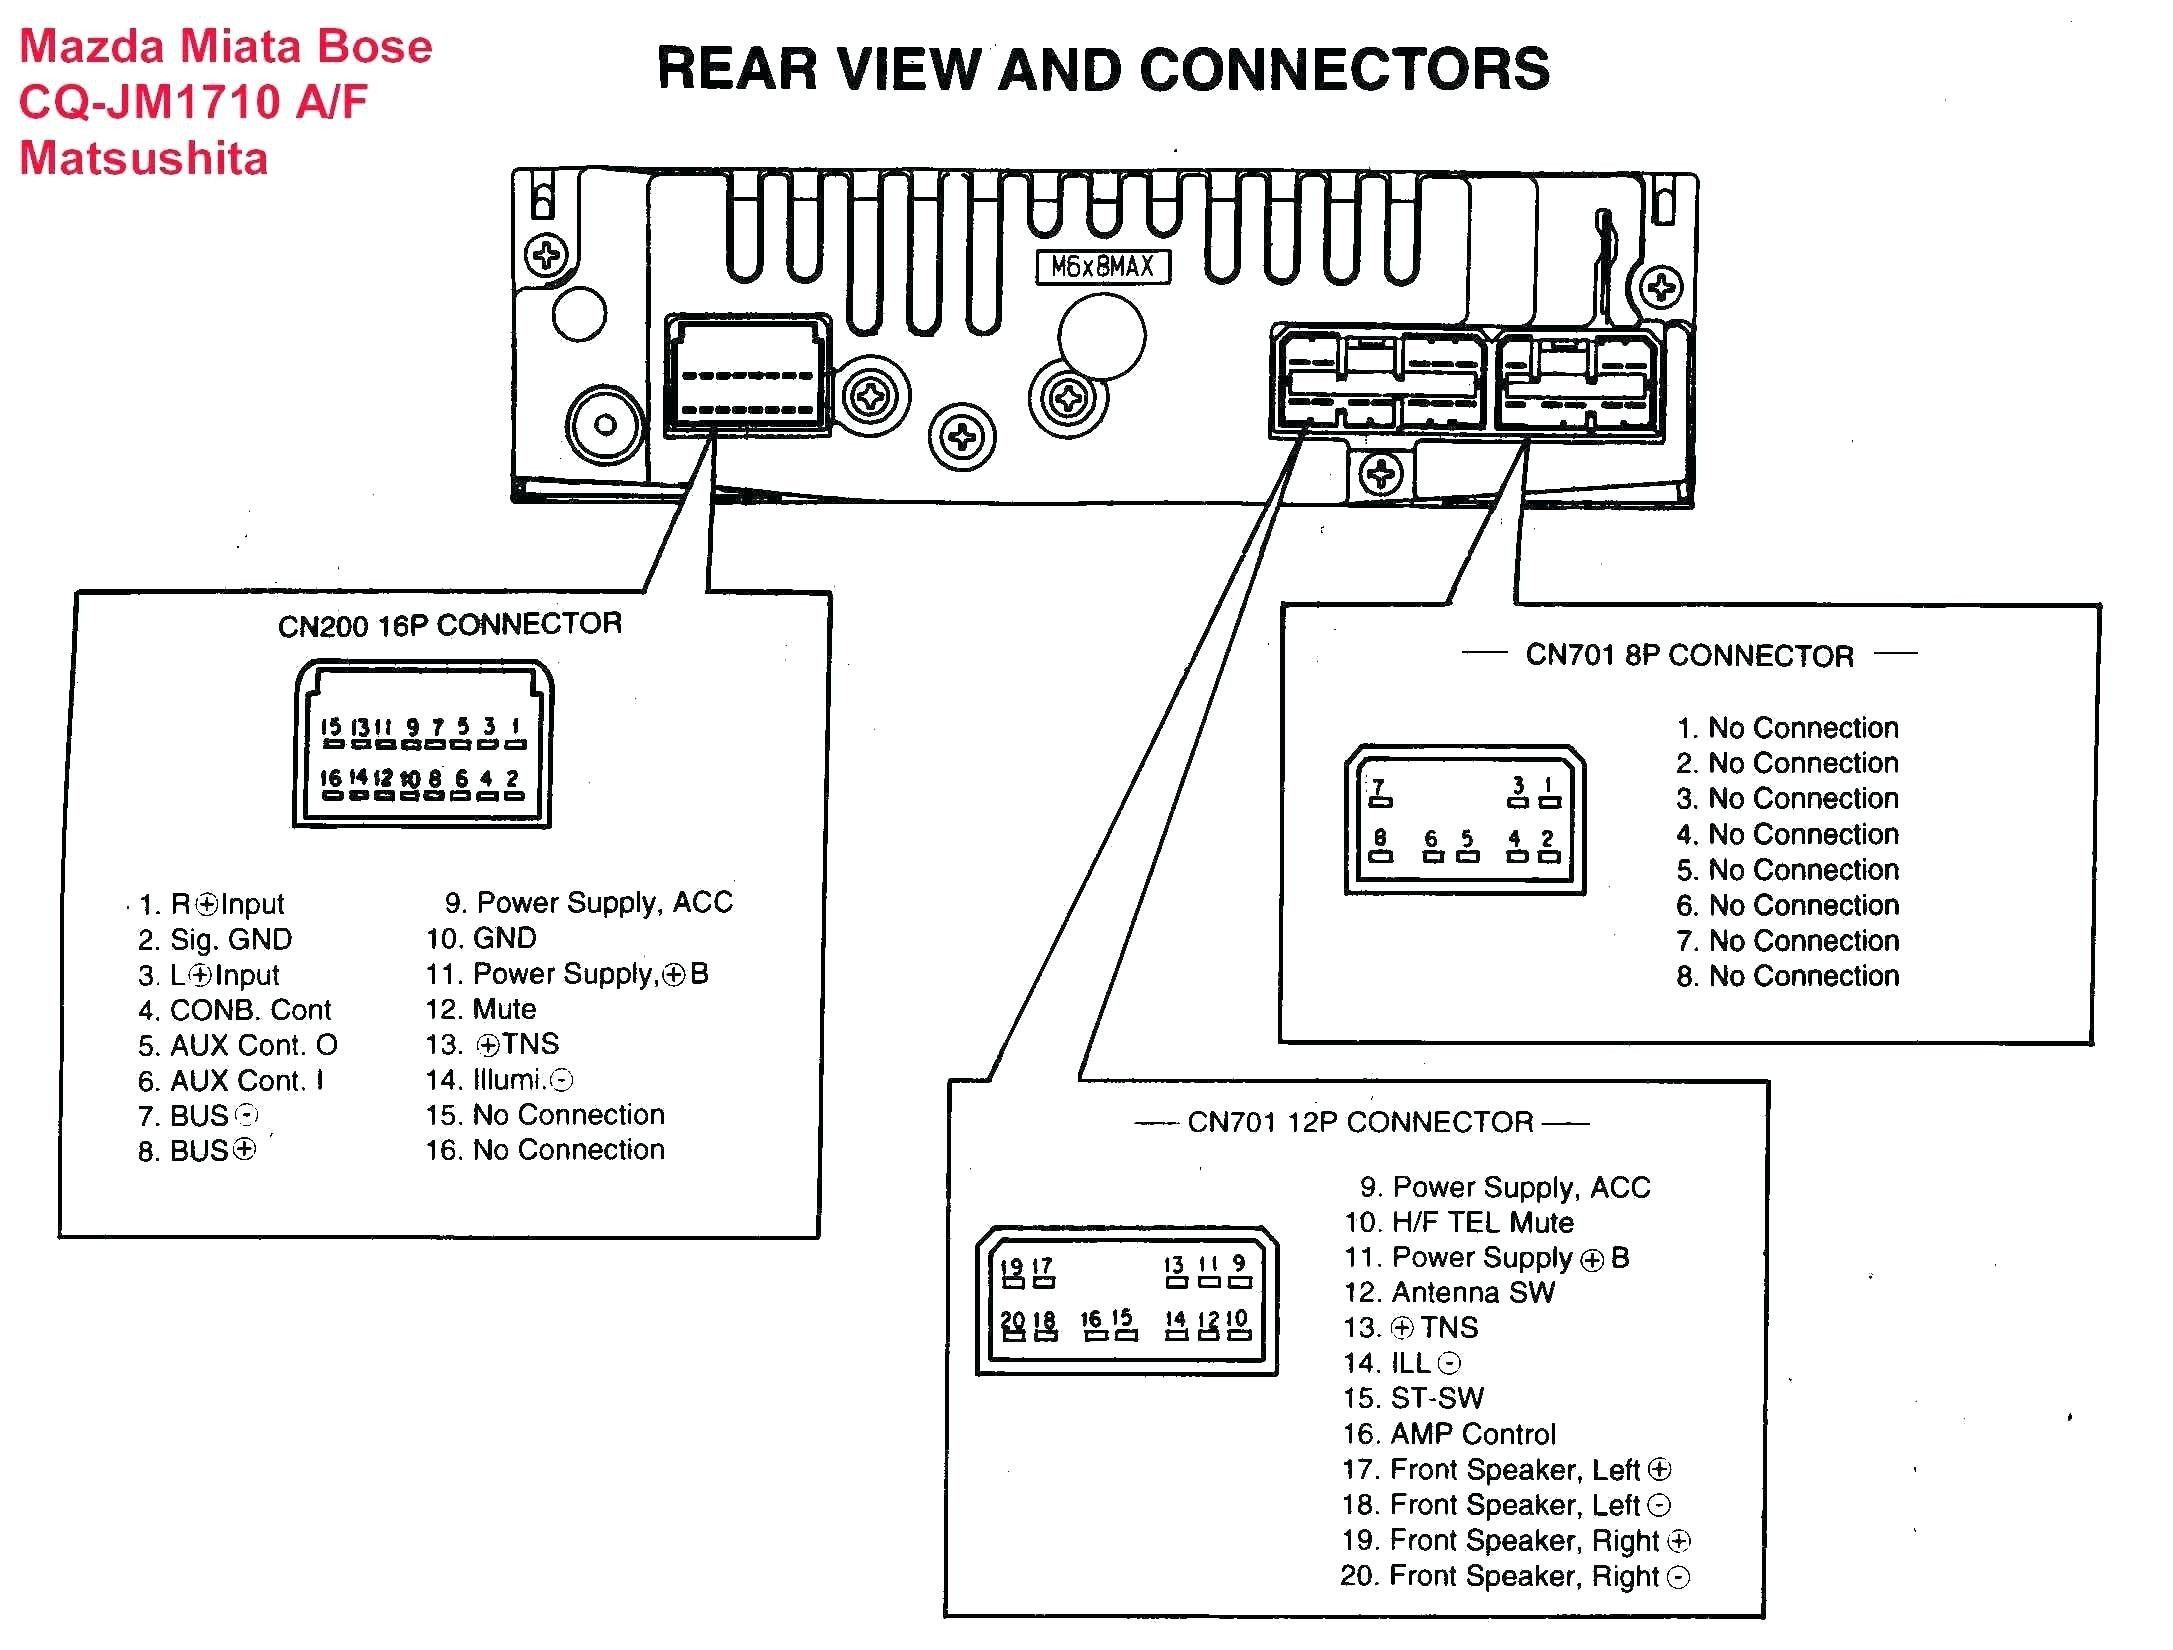 Diagrams Digramssample Diagramimages Wiringdiagramsample Wiringdiagram Check More At Https Nostoc Co Wirin Sony Car Stereo Car Stereo Systems Car Stereo